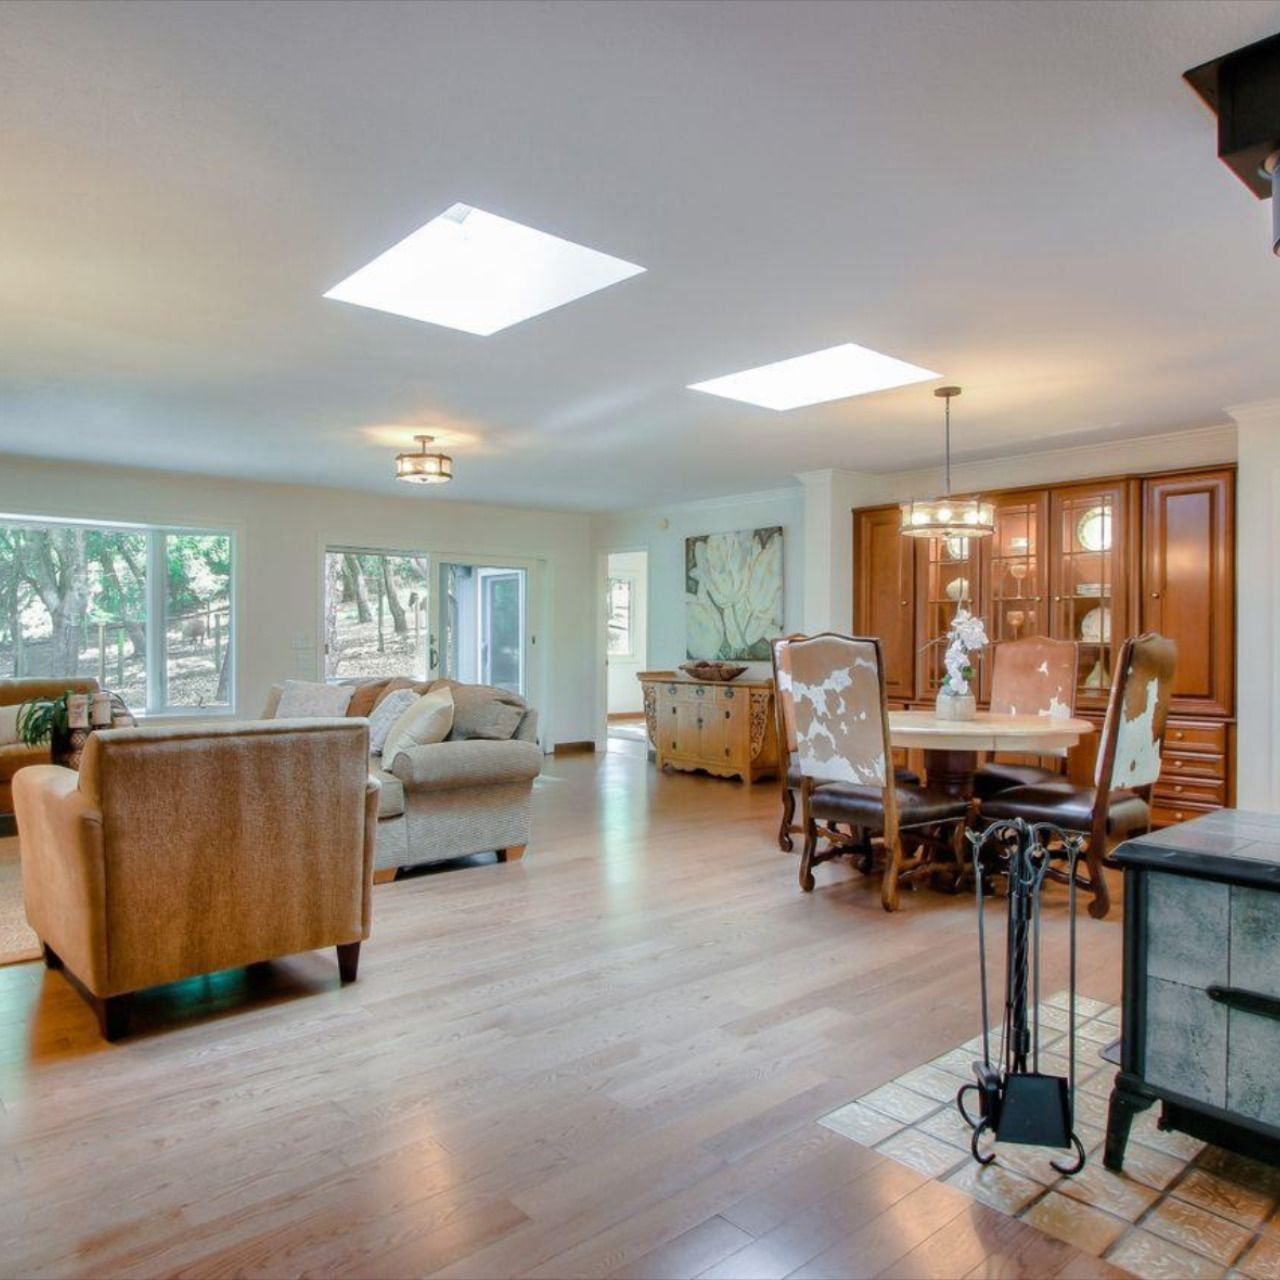 22108 Call Of The Wild RD, LOS GATOS, CA 95033 | $2,999,999 Feel free to contact me or schedule a showing  Gary Morgan Realty World-Todd Su & Company 408-504-3017 gary@morganrealtyusa.com  #interiordesign #realestate #siliconvalleyhomes #bayarea #siliconvalleyrealestate #bayareahomes #LosGatos #realtor #homedesign #newhome #dreamhome #houseandhome #customhomes #homeforsale #househunting #GaryMorgan #siliconvalley #Morganrealtyusa #LosGatoshomesforsale #homes #housingmarket